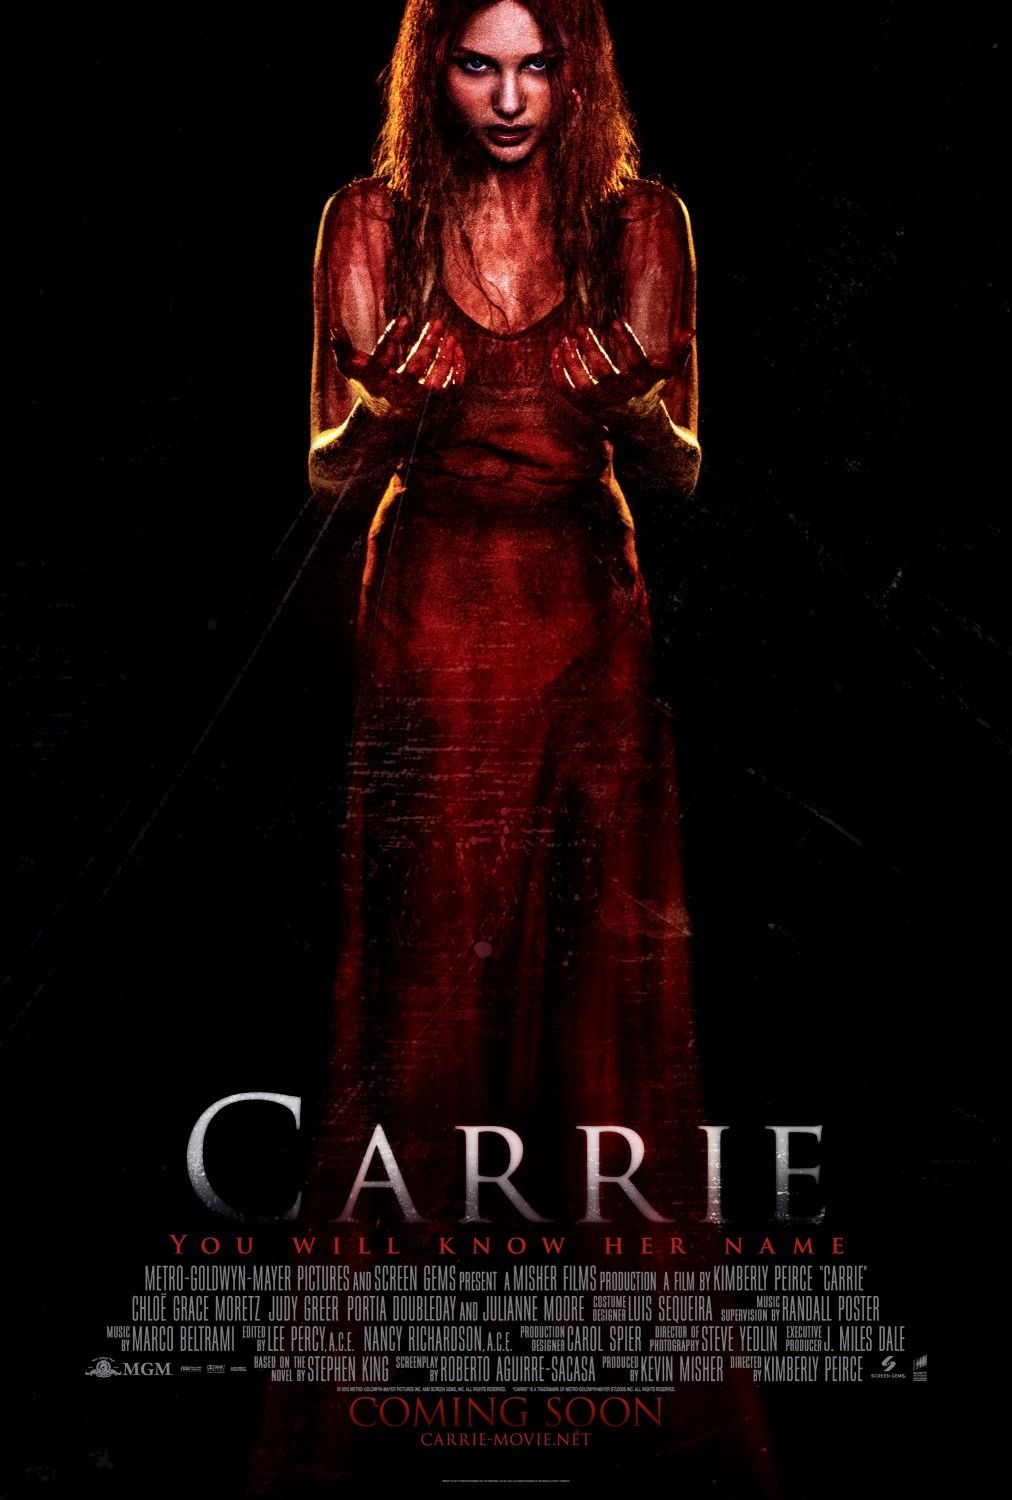 Carrie (2013) Carrie movie, Carrie movie 2013, Horror movies